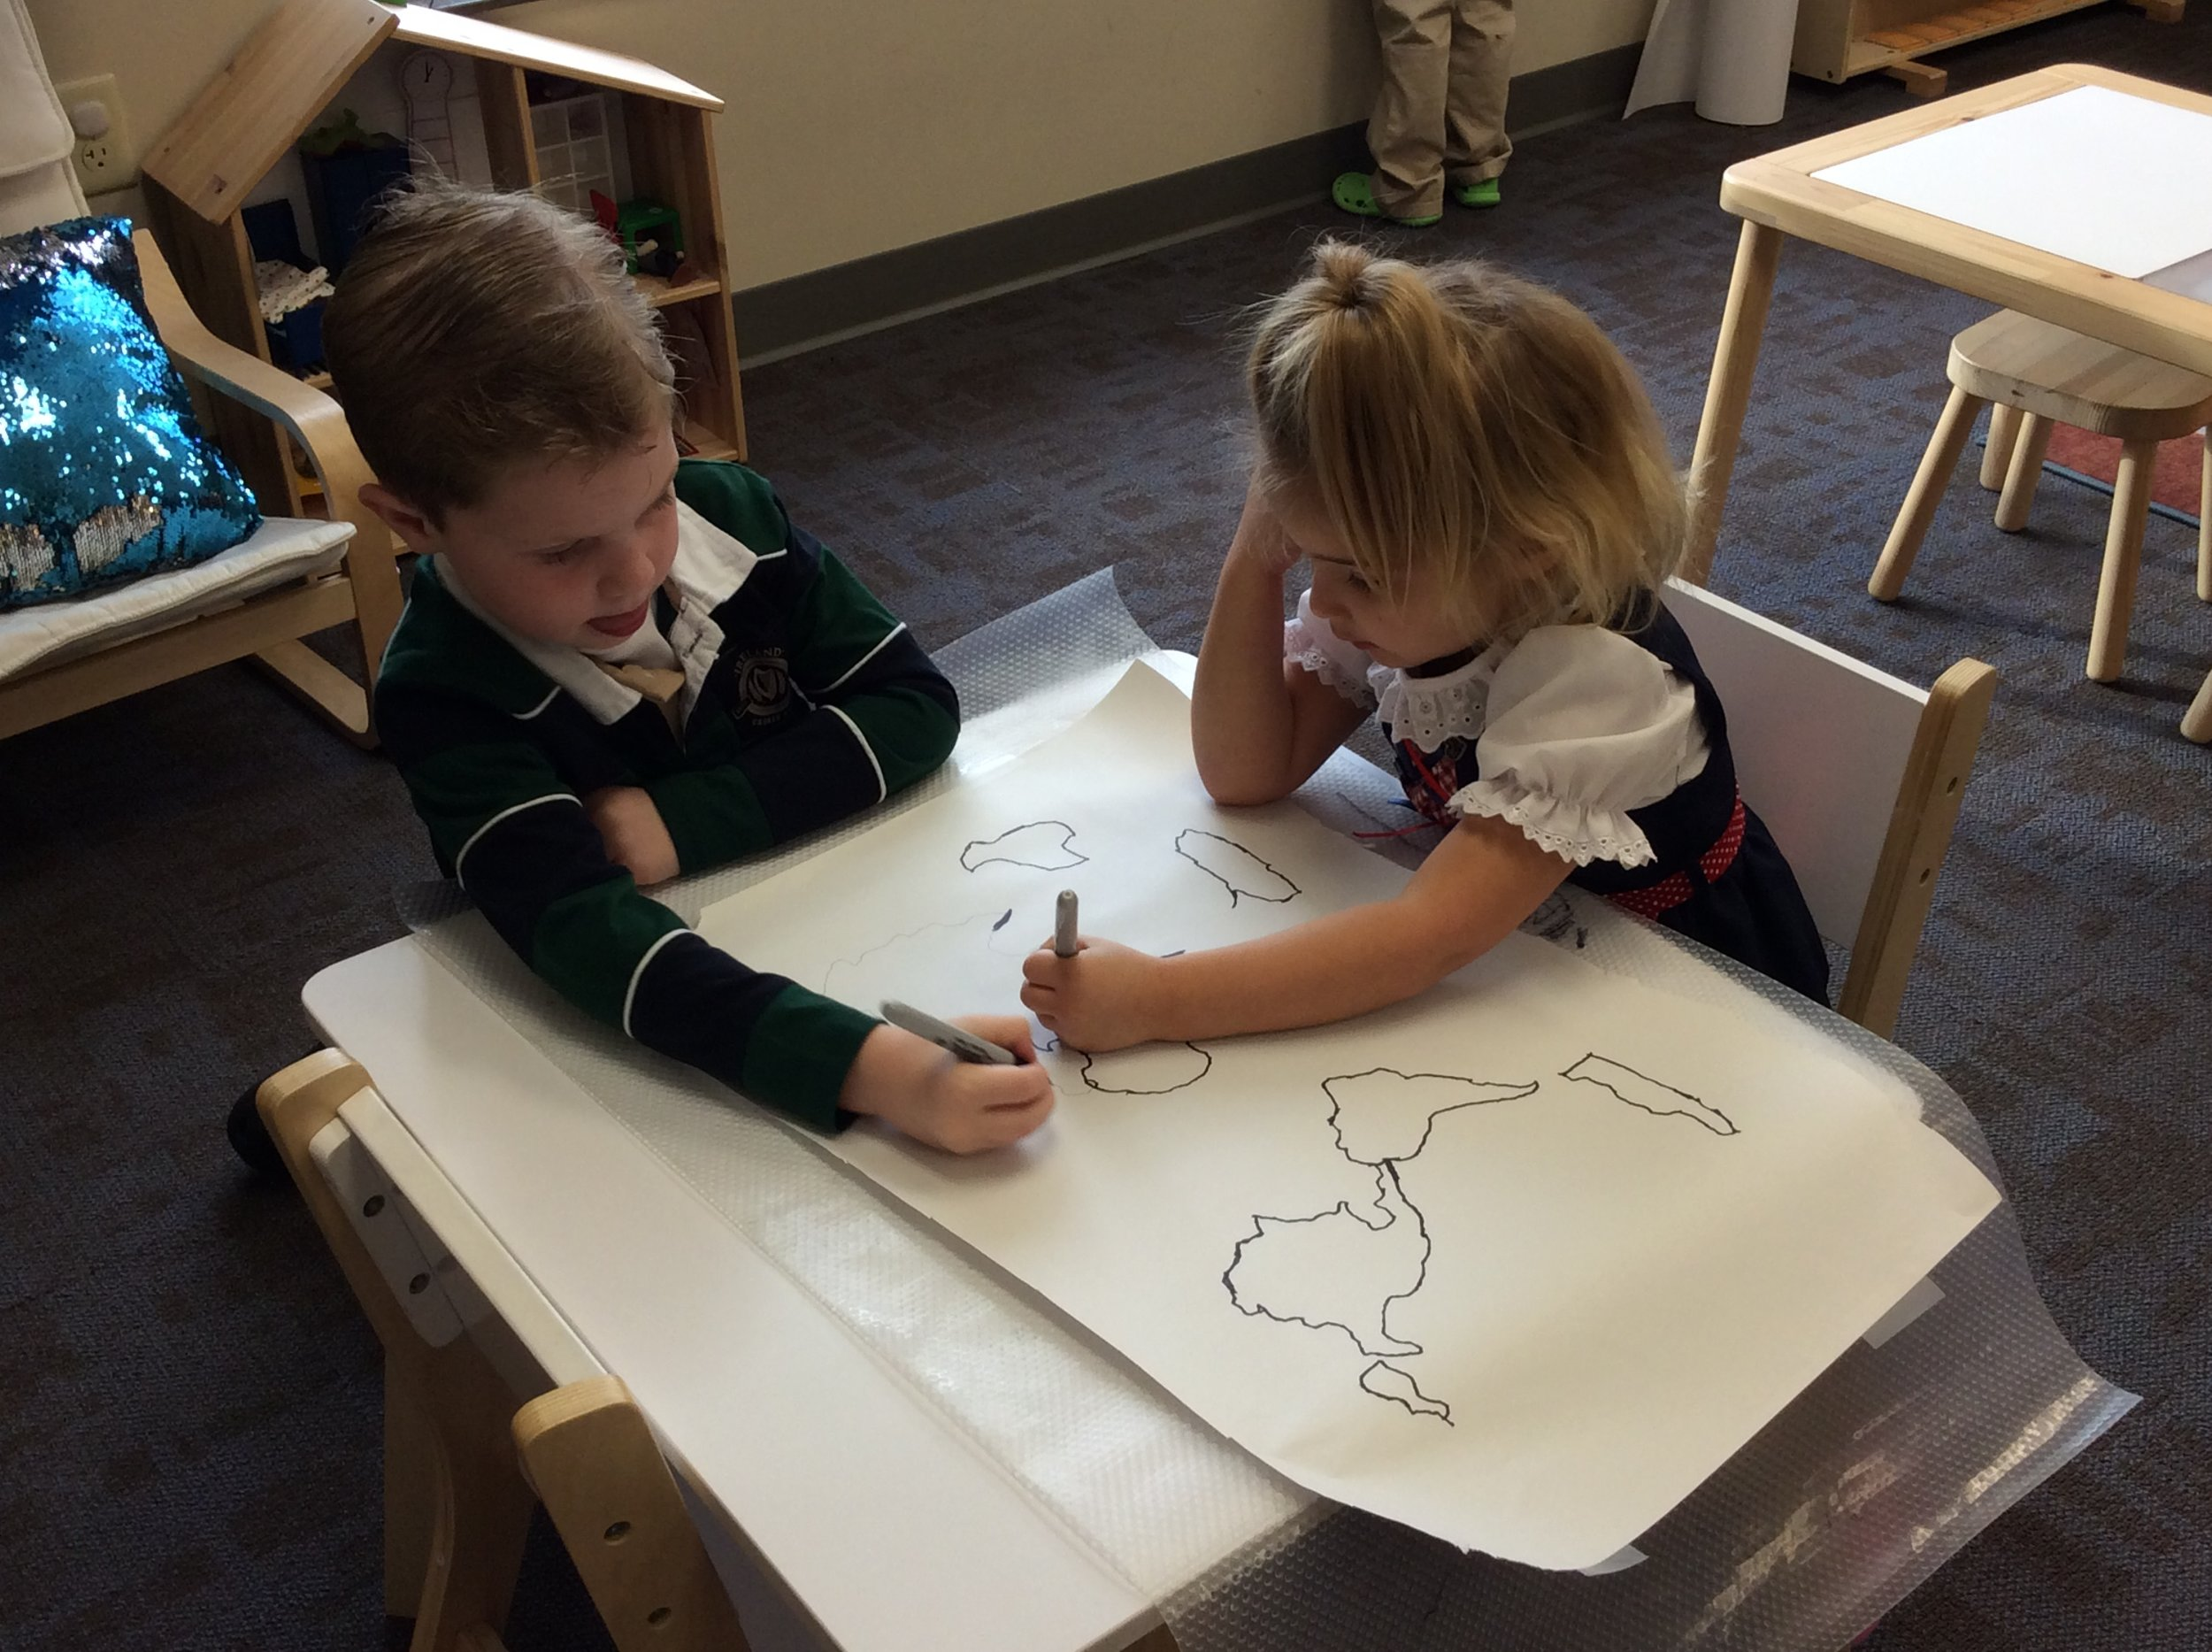 Of course after all the celebrations students wanted to work on maps